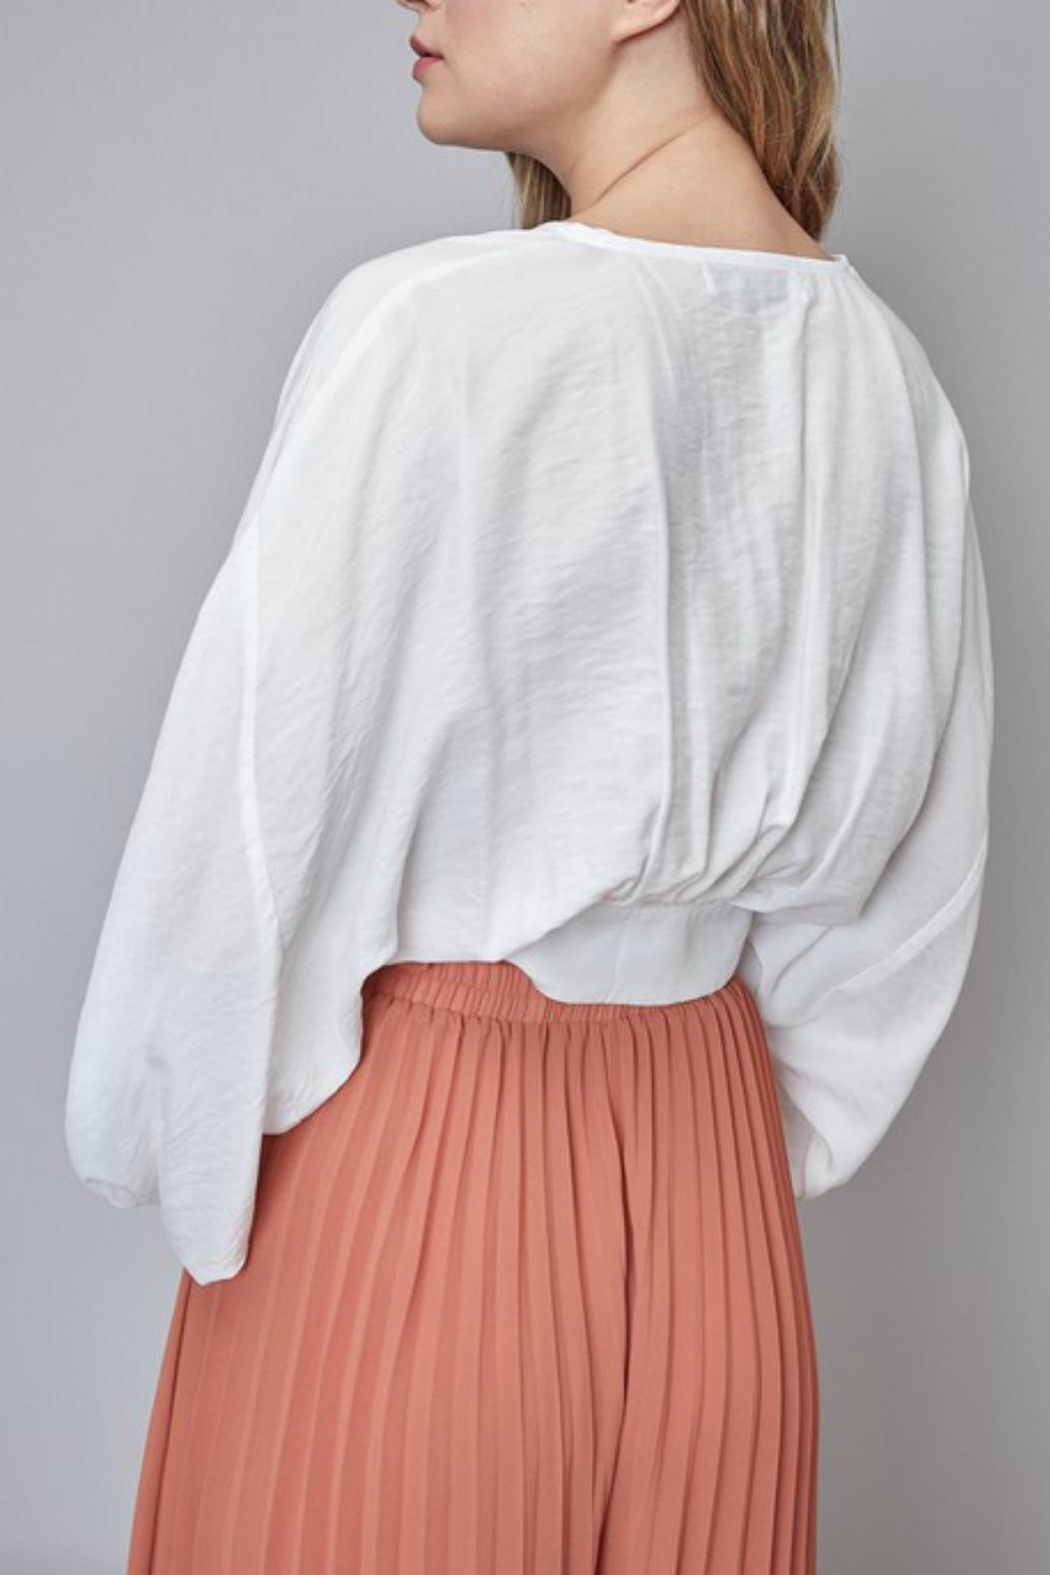 Pretty Little Things Blouse Crop Top - Side Cropped Image